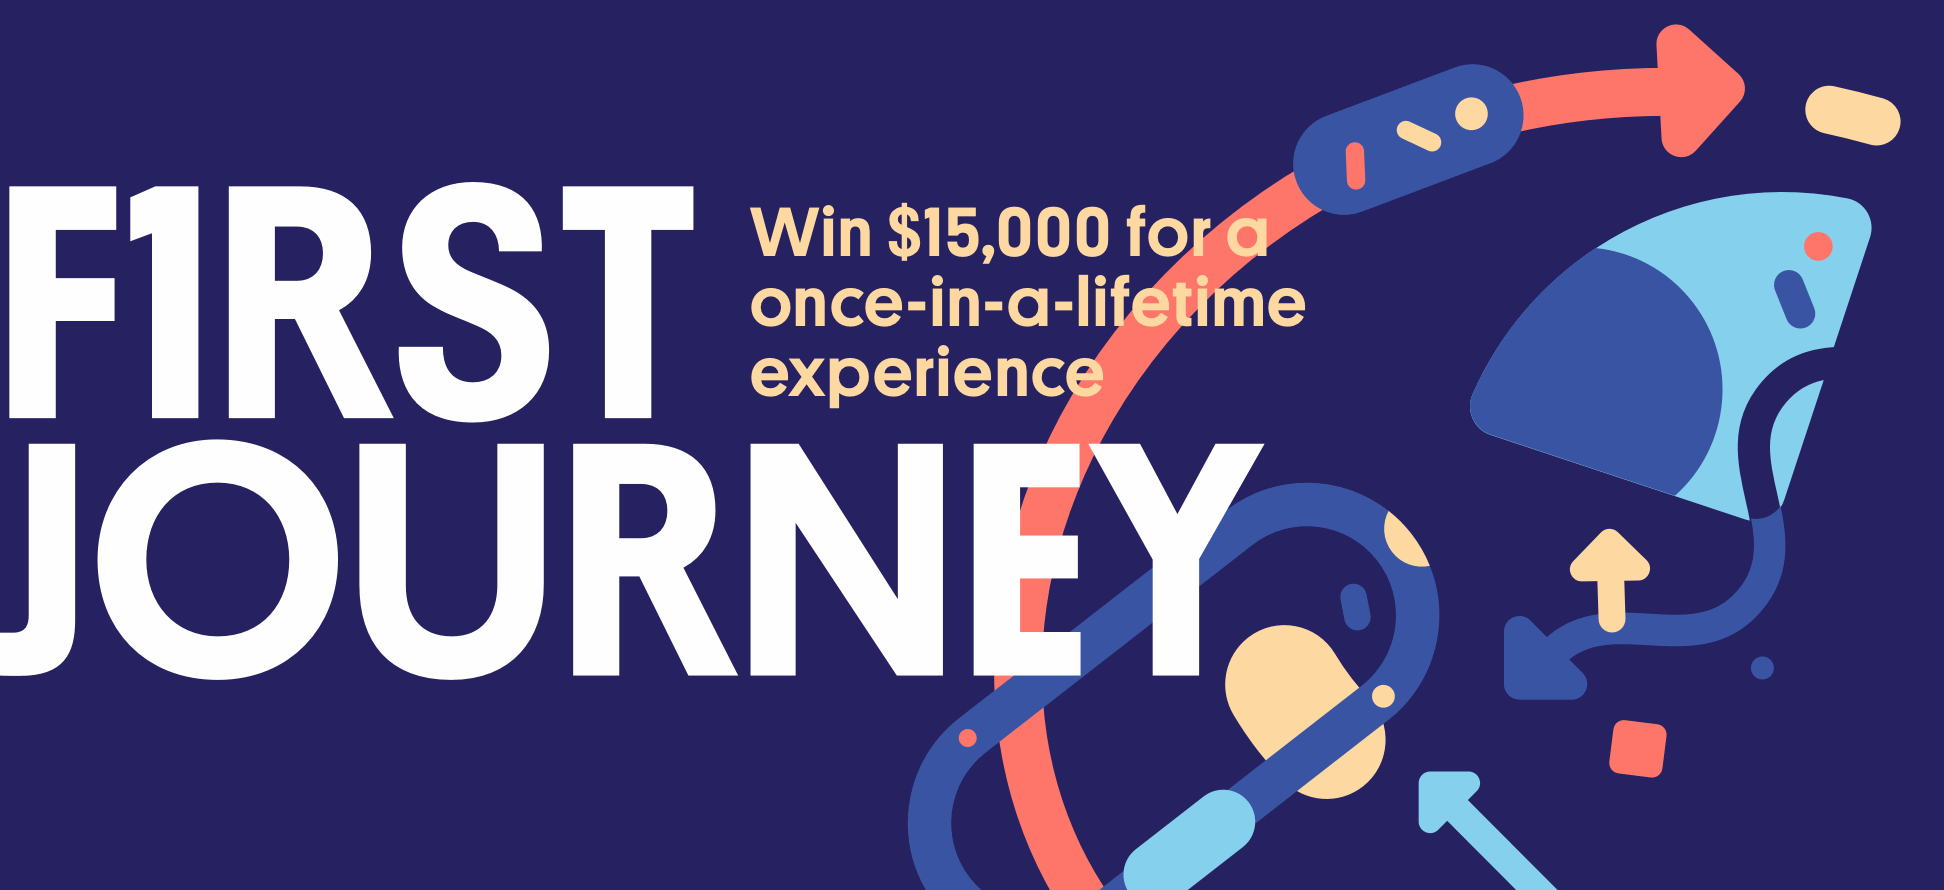 First Journey by Atlas Obscura. Win $15,000 toward a once-in-a-lifetime experience.